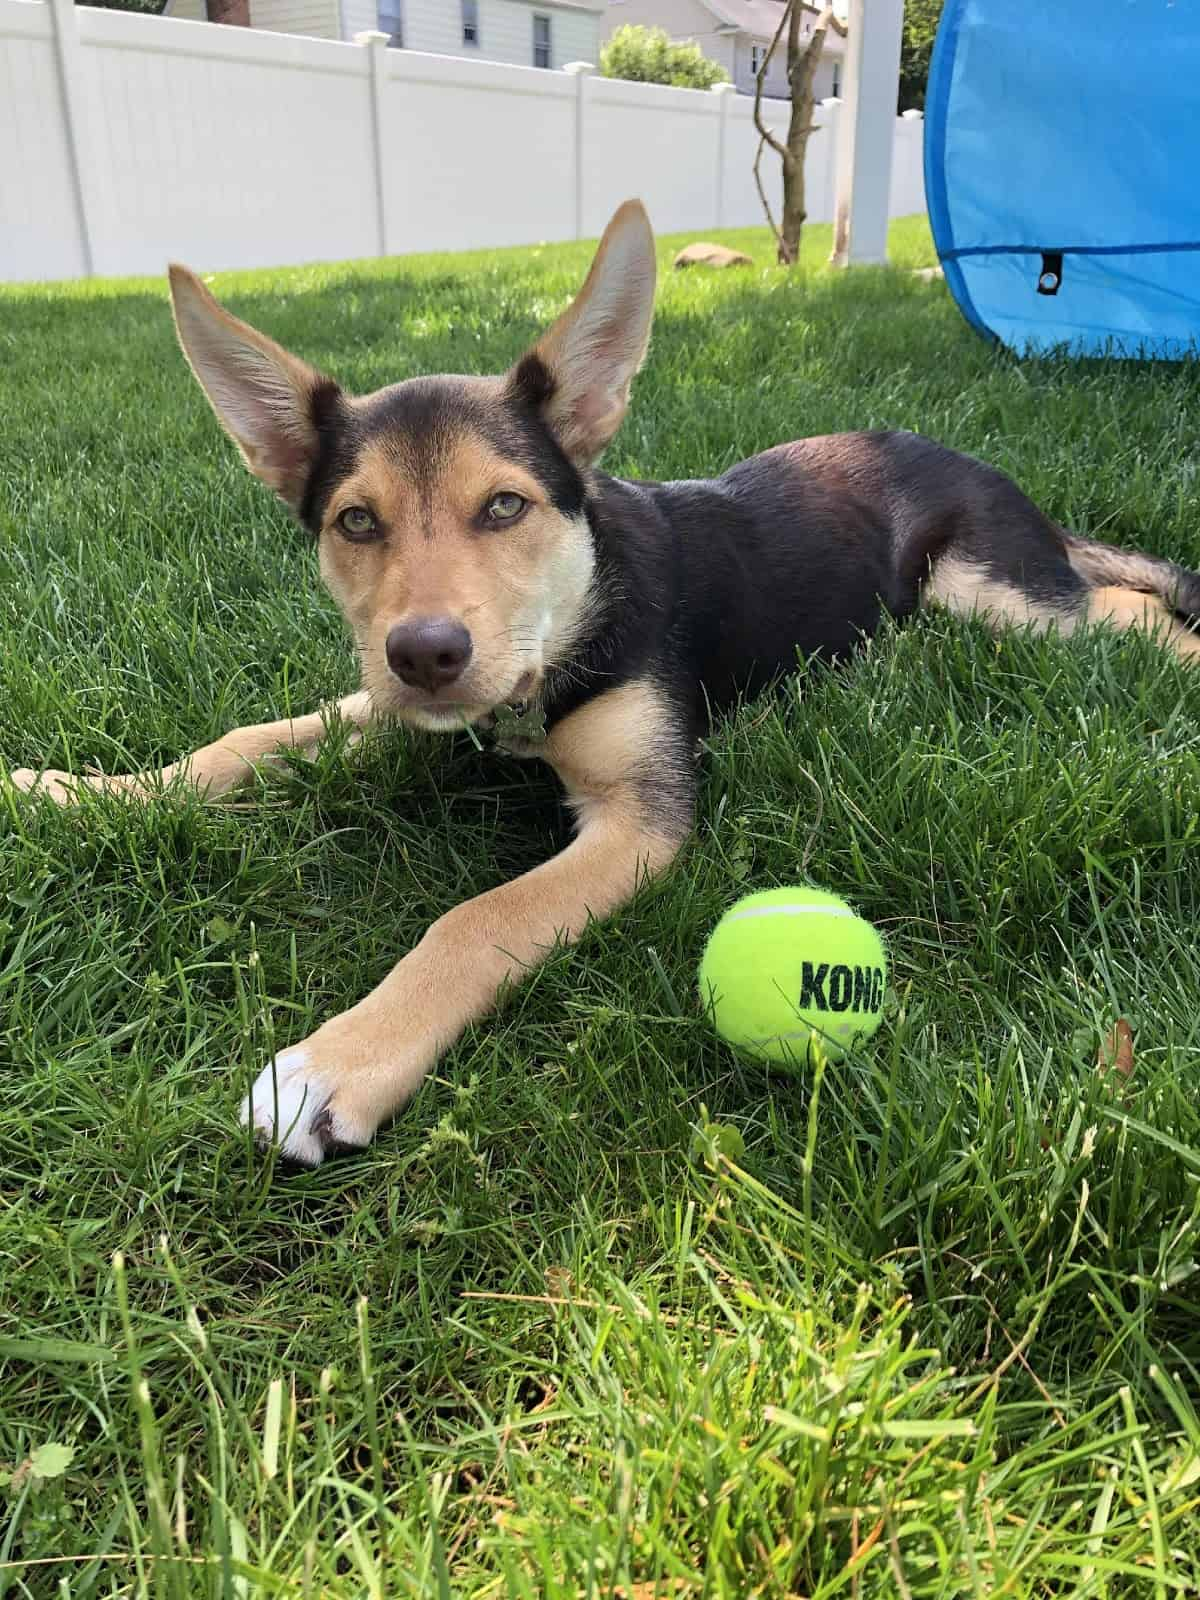 A puppy lays on the grass next to a tennis ball during a training session